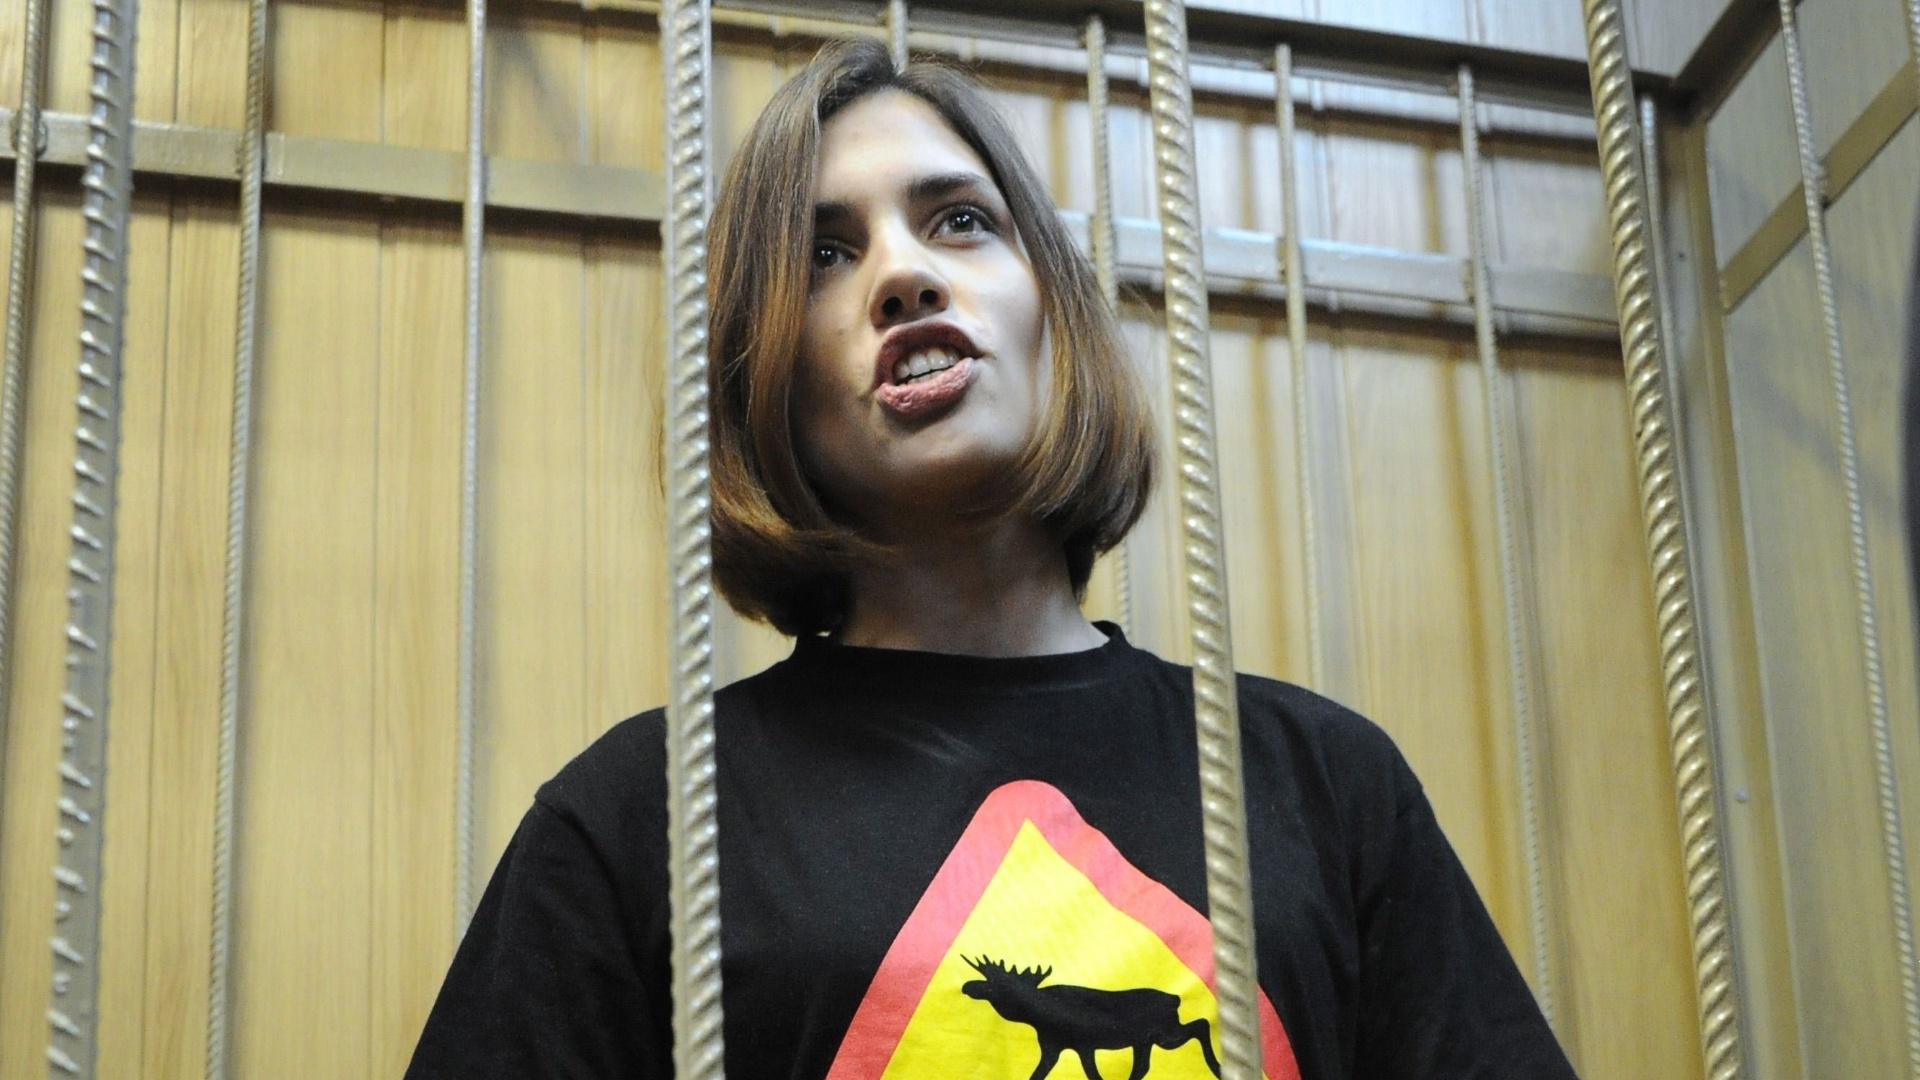 Nadezhda Tolokonnikova, da banda punk feminina Pussy Riot, aguarda julgamento em corte de Moscou